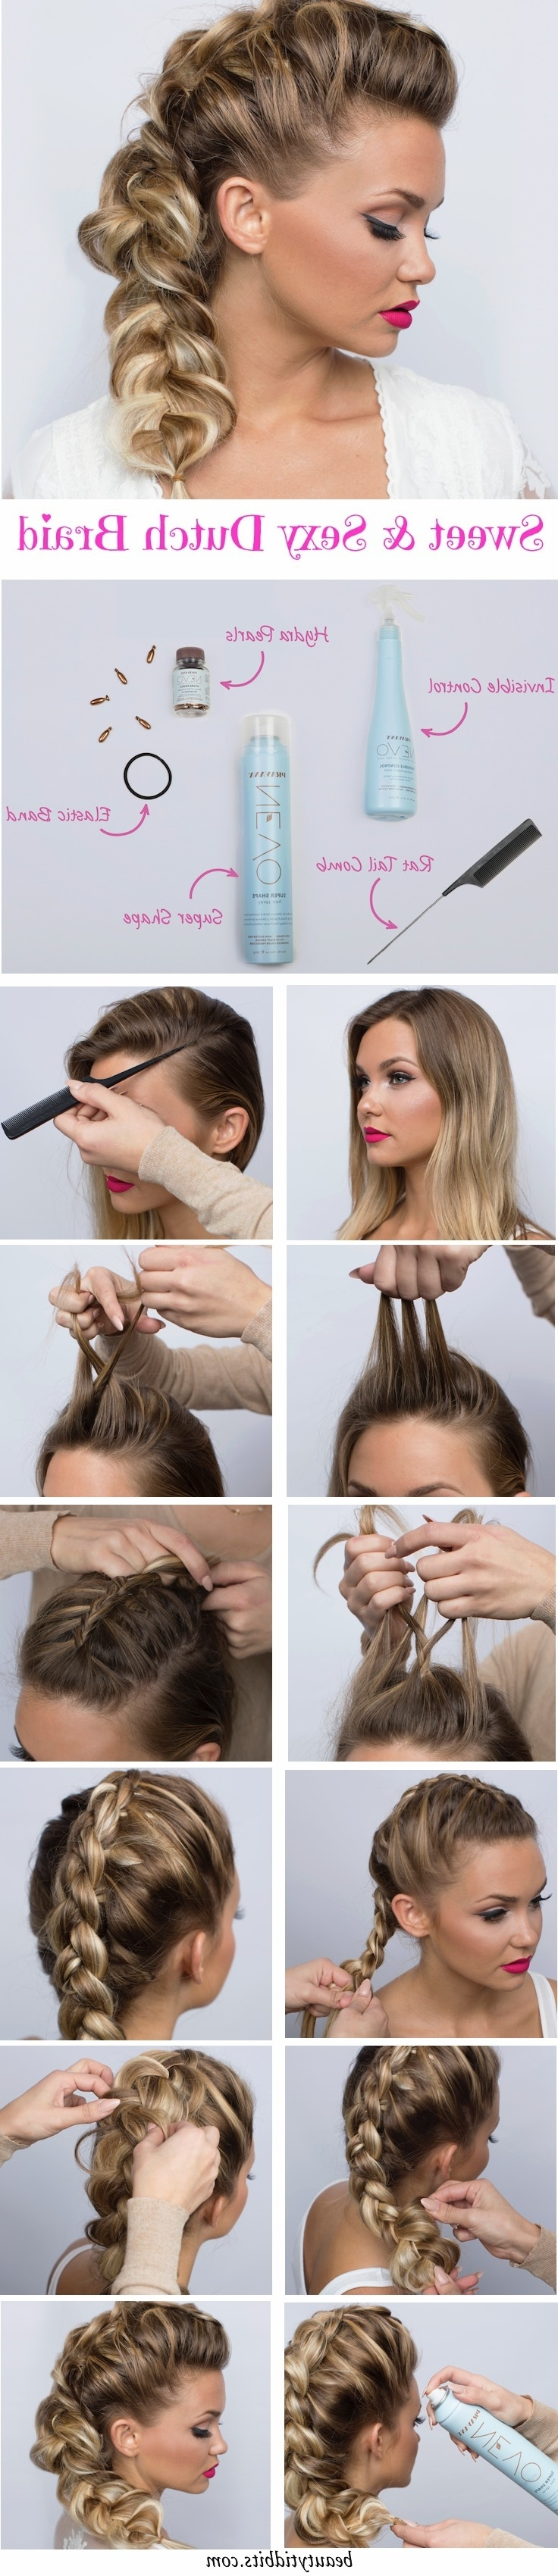 28 Trendy Faux Hawk Hairstyles For Women 2018 – Pretty Designs Intended For Most Recent Faux Hawk Ponytail Hairstyles (View 13 of 20)